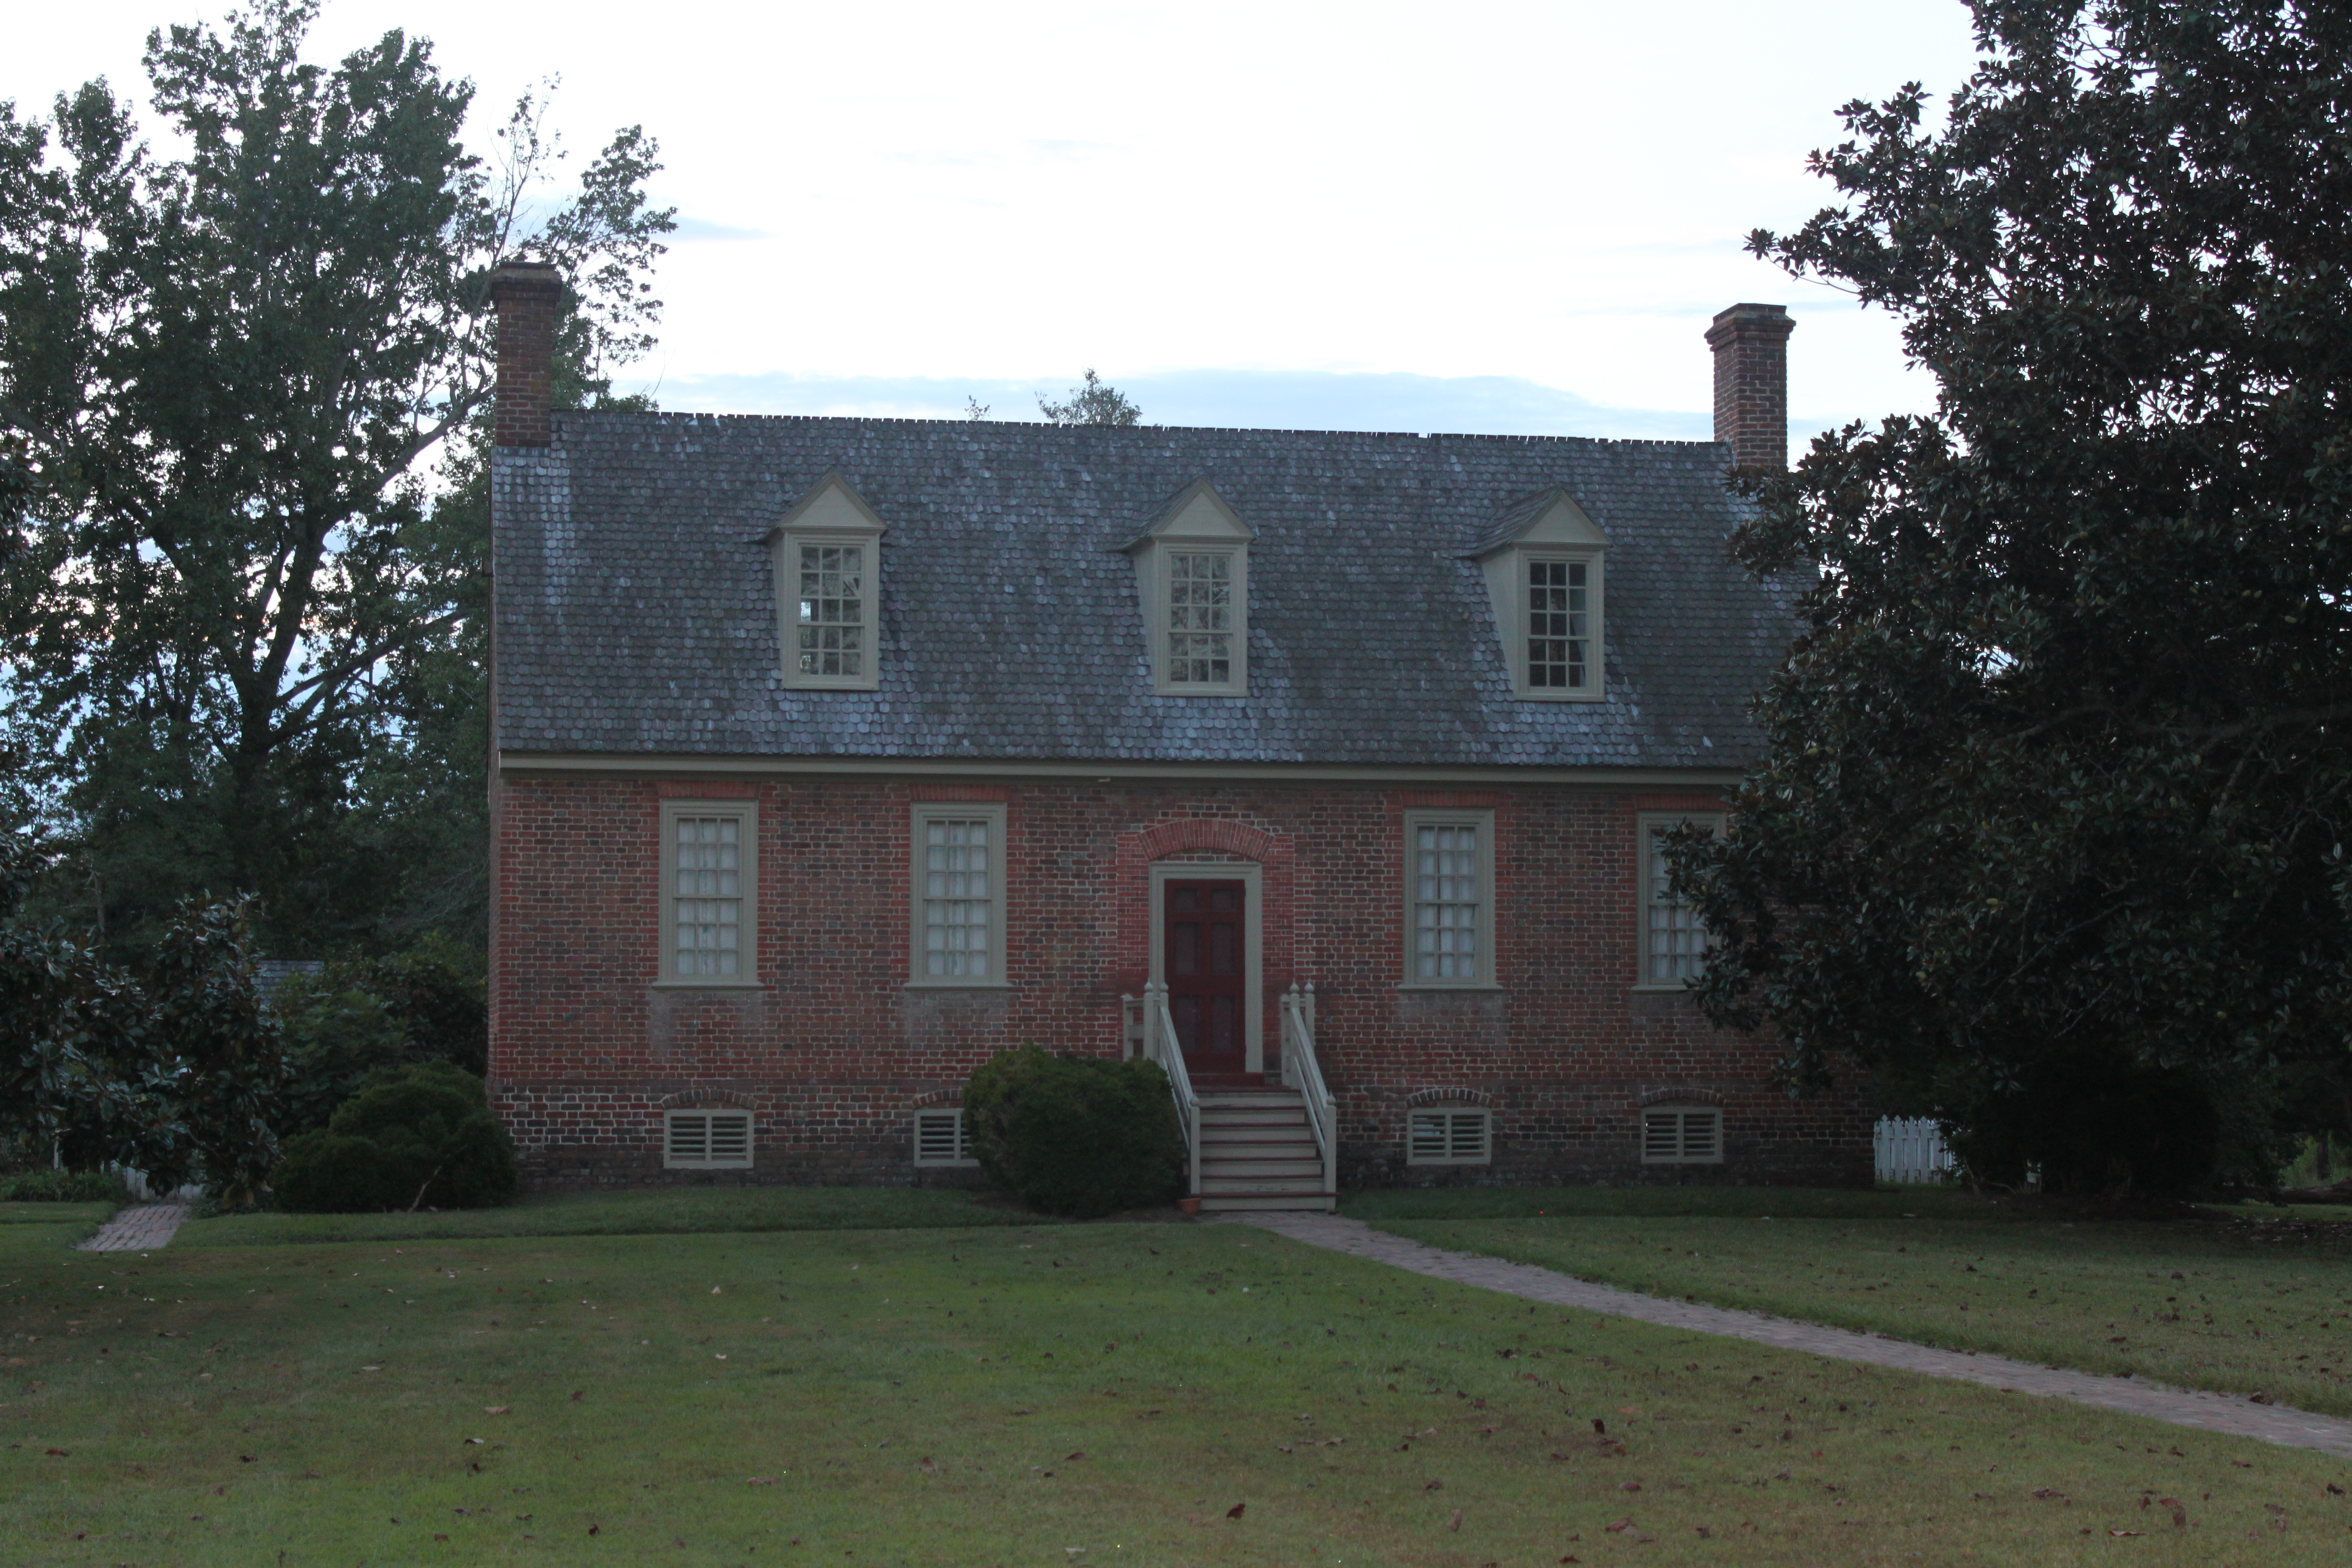 Smith's Fort Plantation House by NatWebb on Wikimedia Commons (CC BY-SA 3.0)